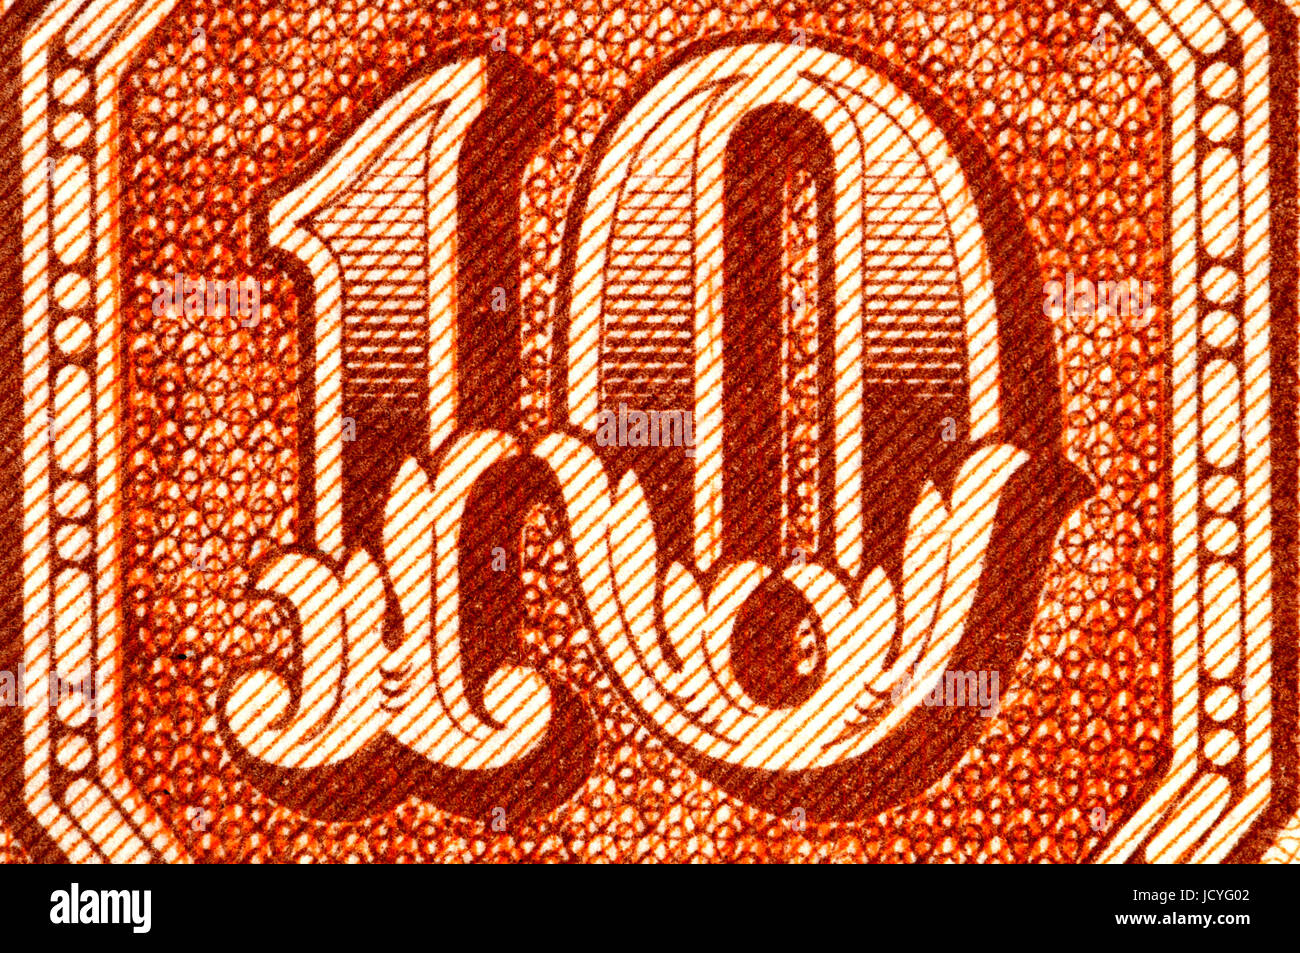 Detail from a 10kc Czech banknote showing the number 10 - Stock Image